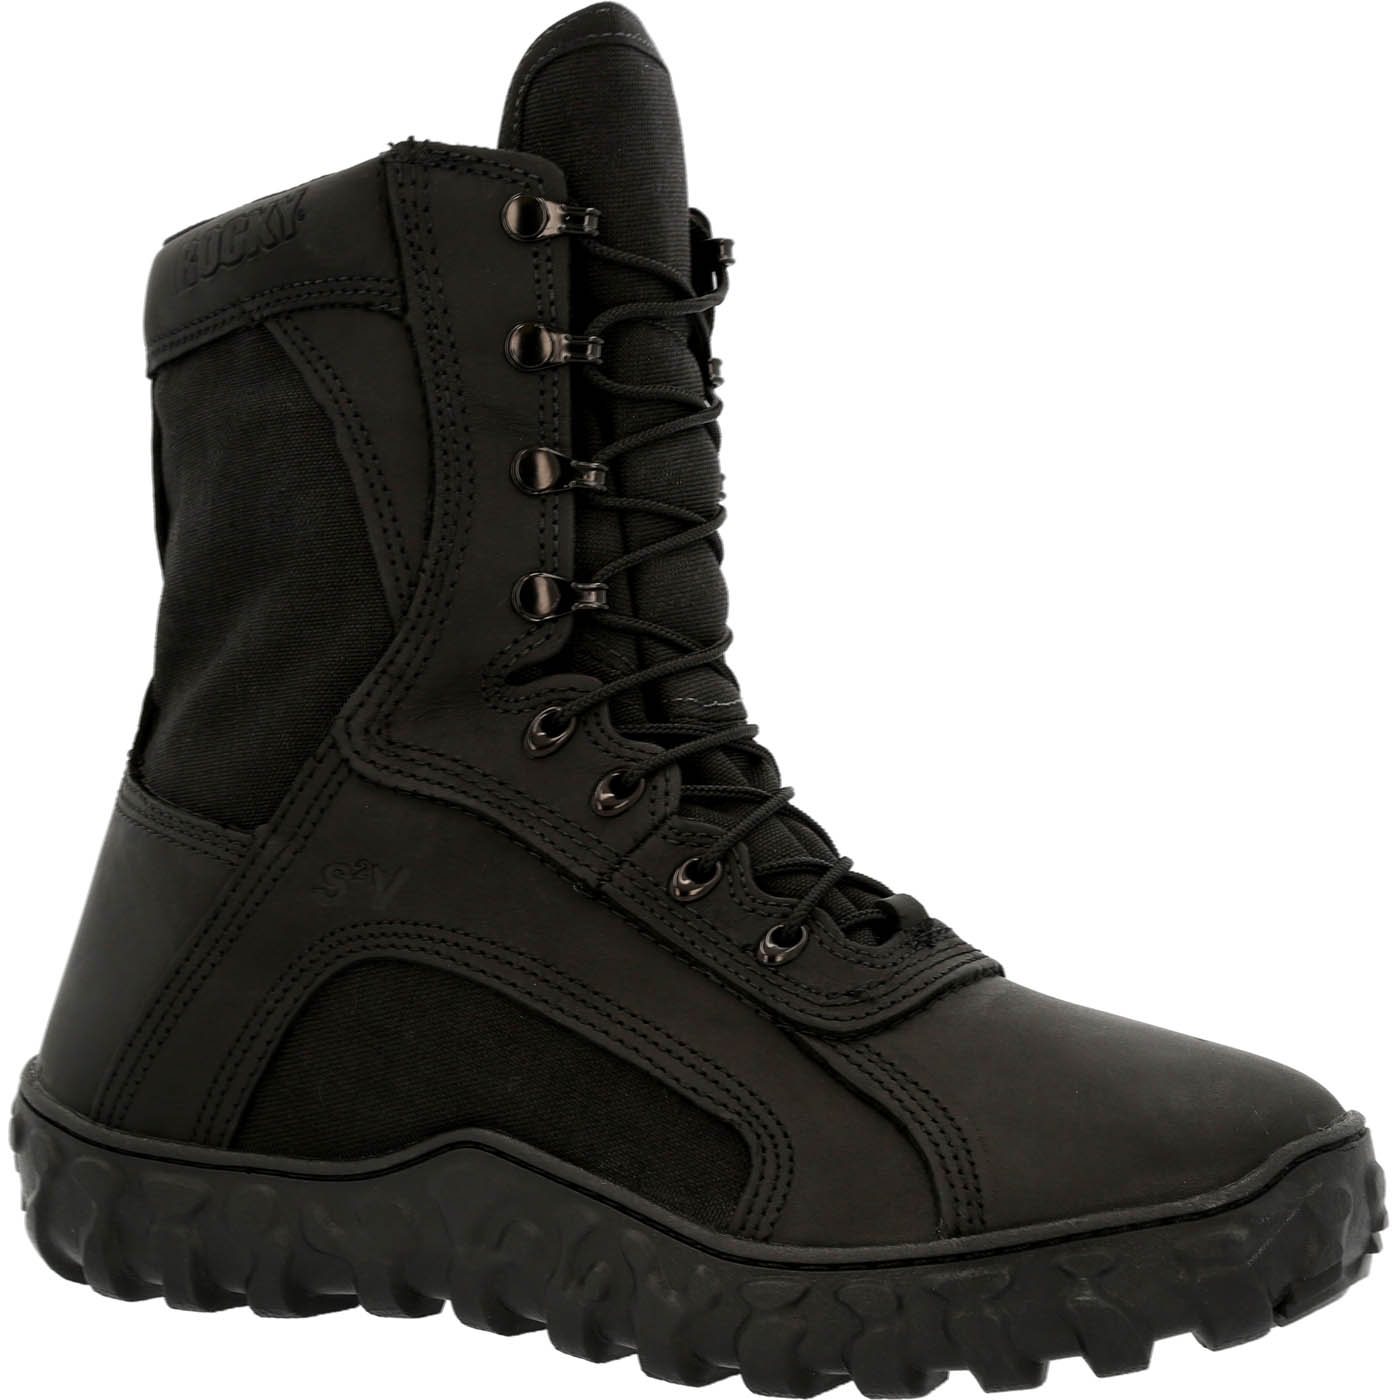 Rocky S2V: Black Waterproof Insulated Military Boot; RKC079